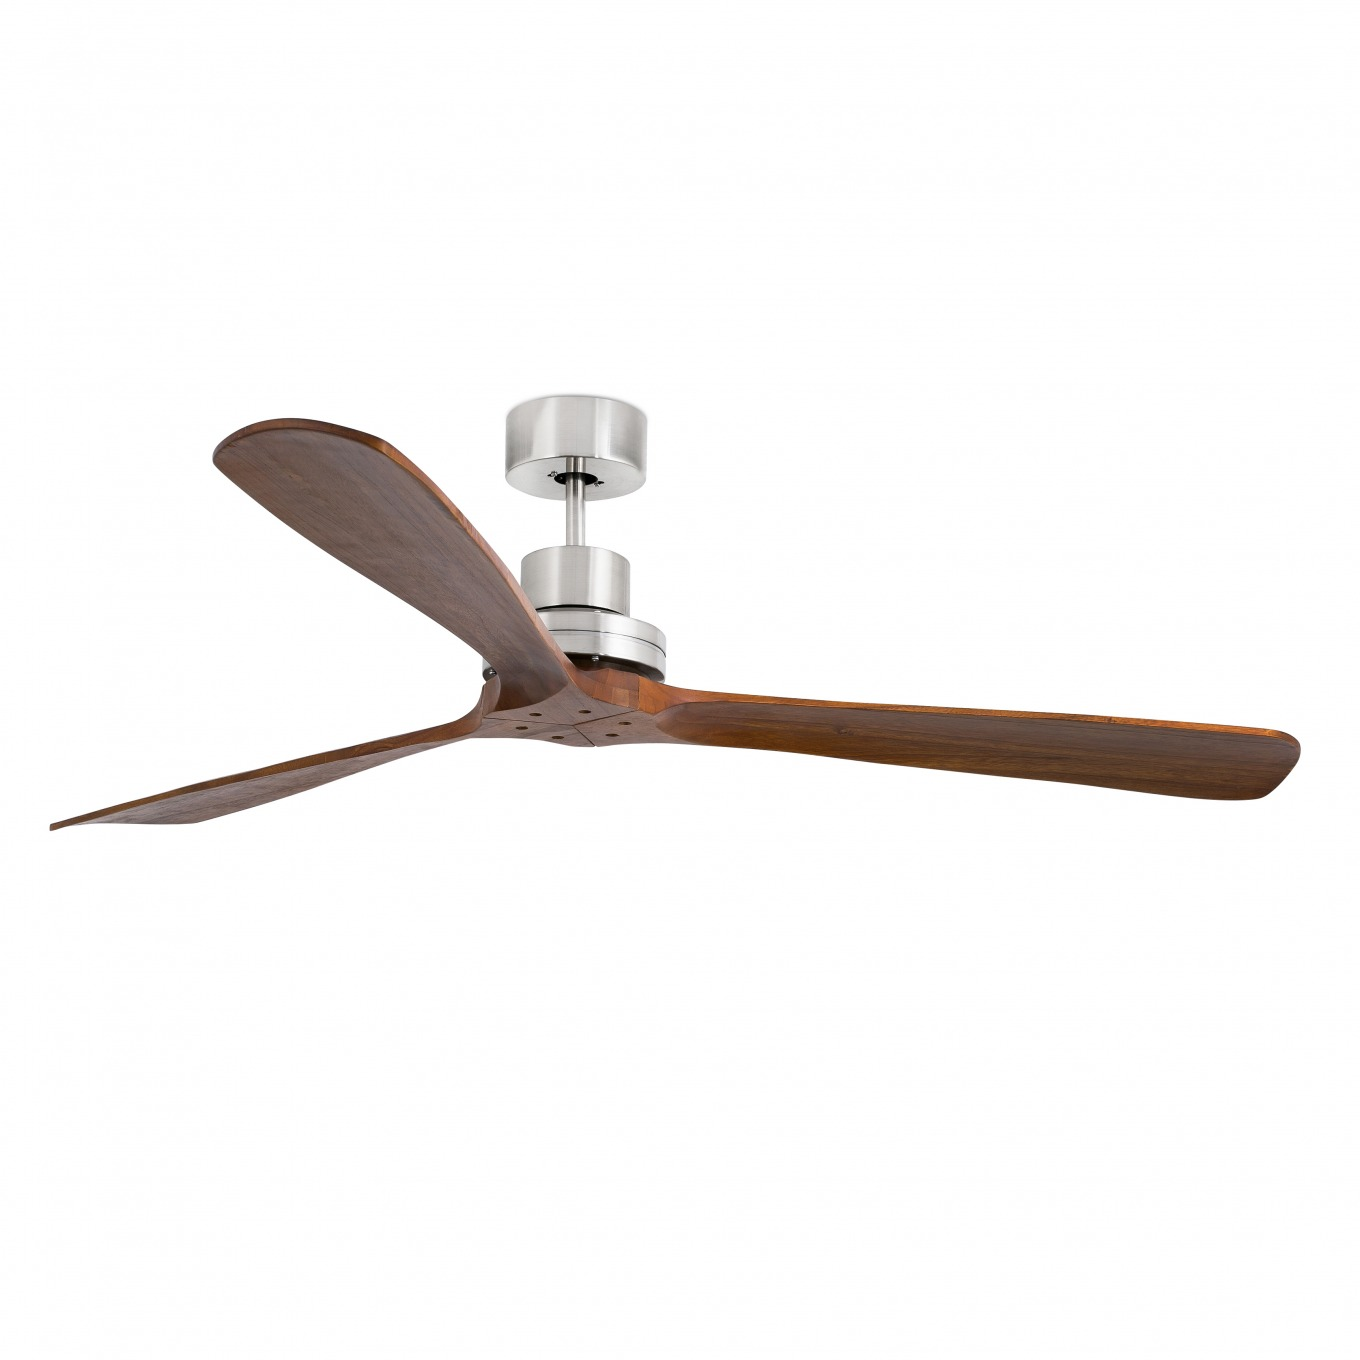 propellor-ventilator-led-verlichting